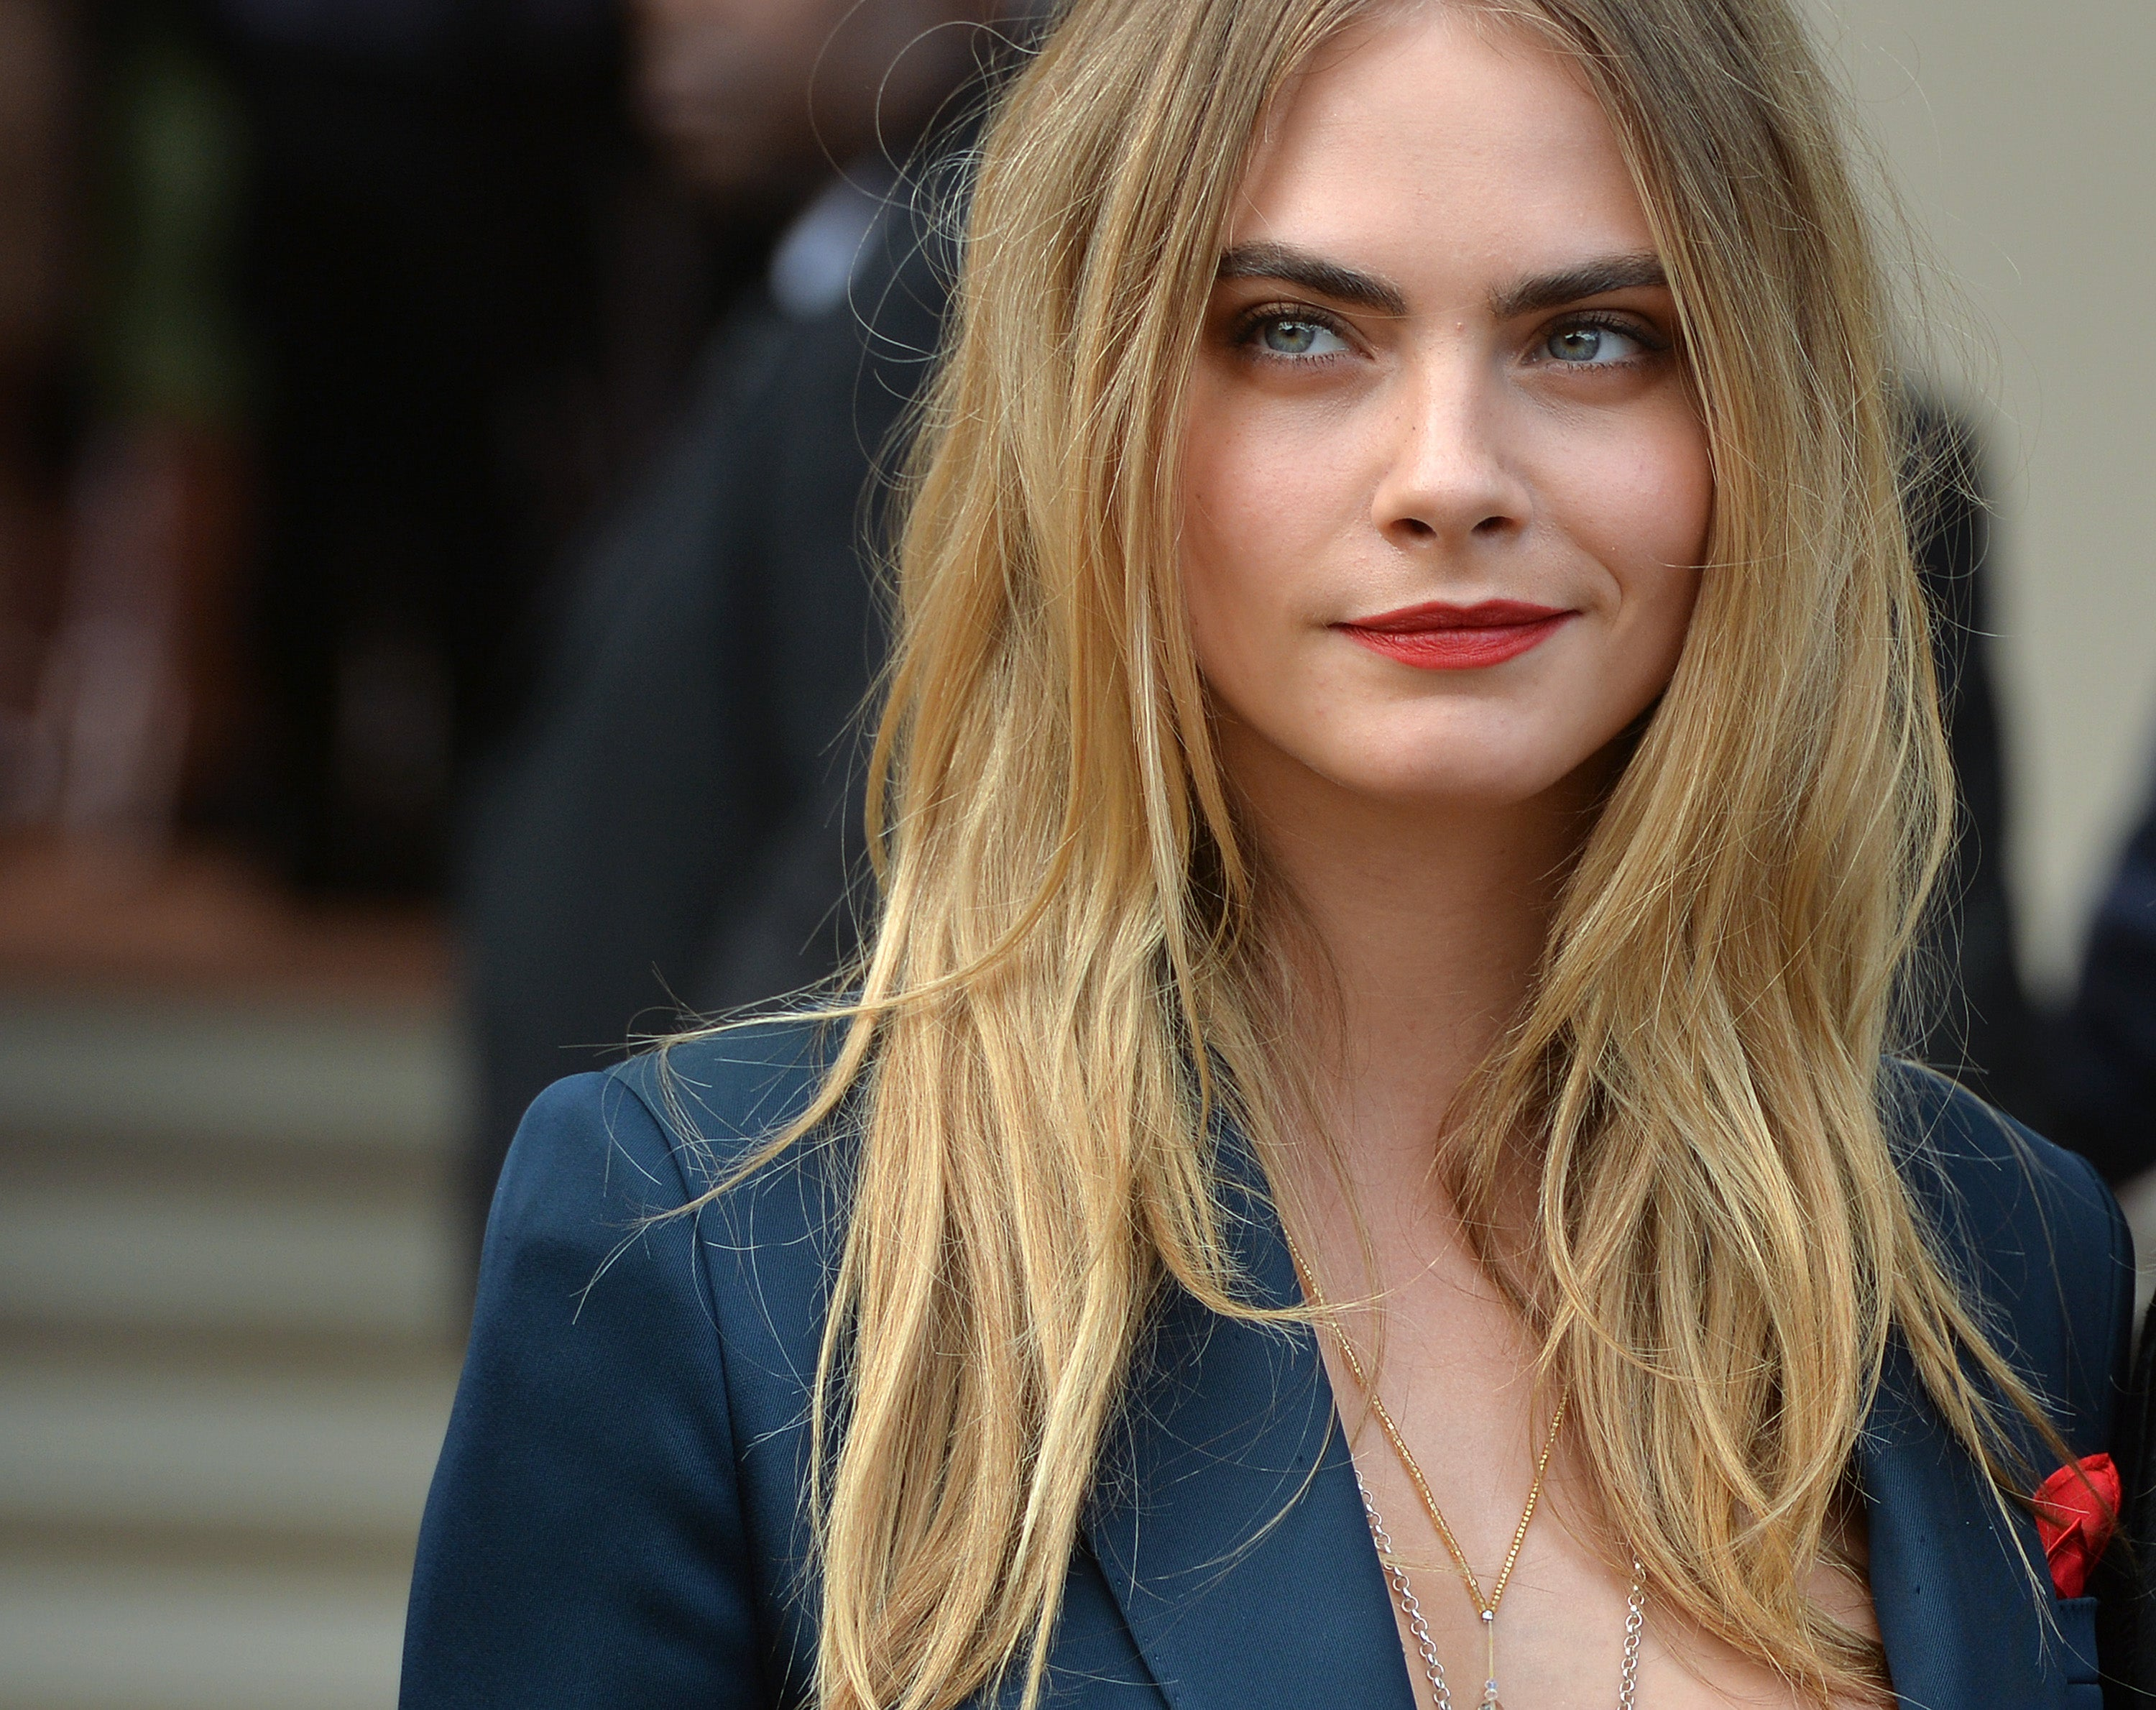 Pictures Cara Delevingne nude photos 2019